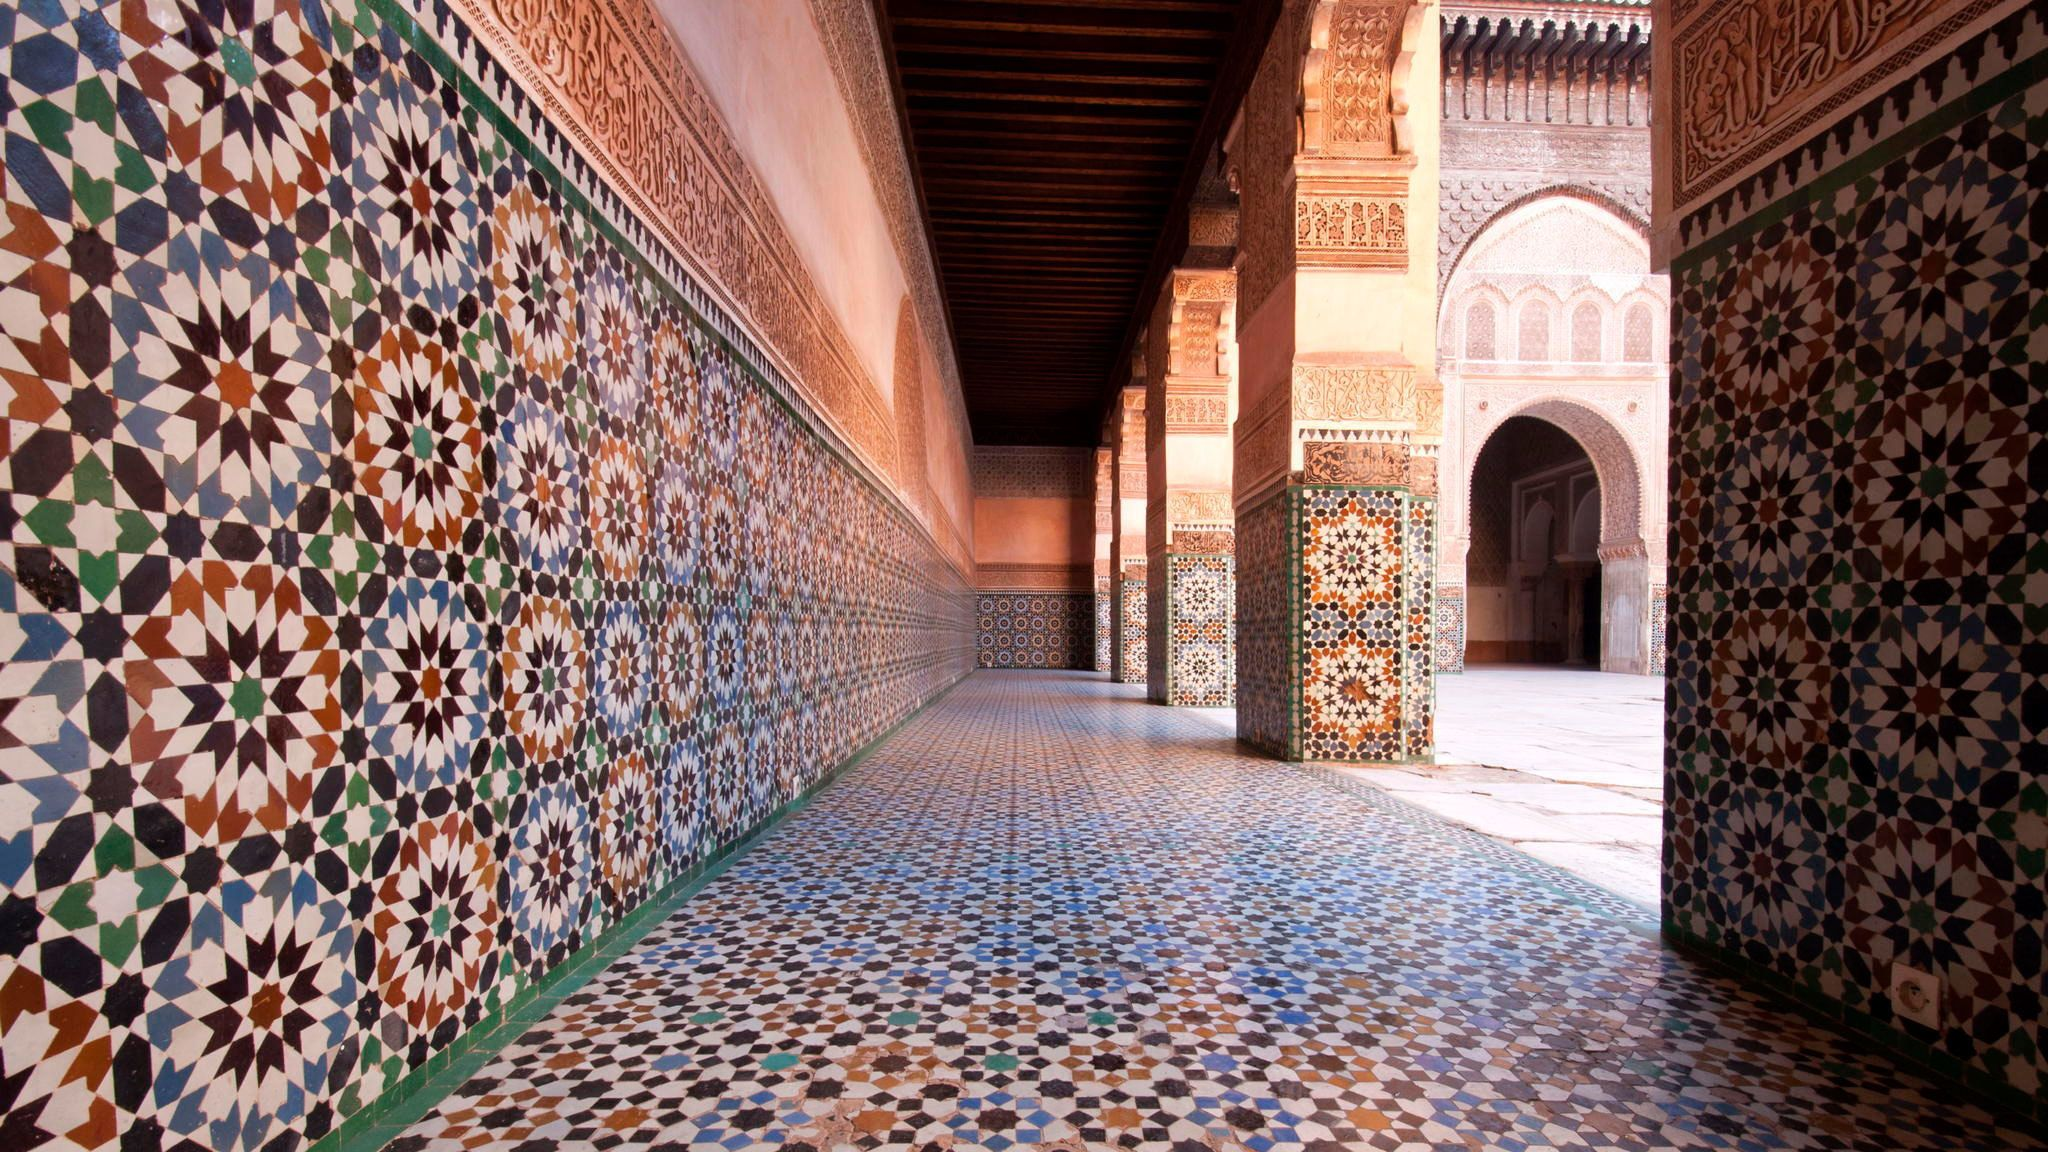 Mosaic cloisters near the courtyard at Bahia Palace in Marrakech